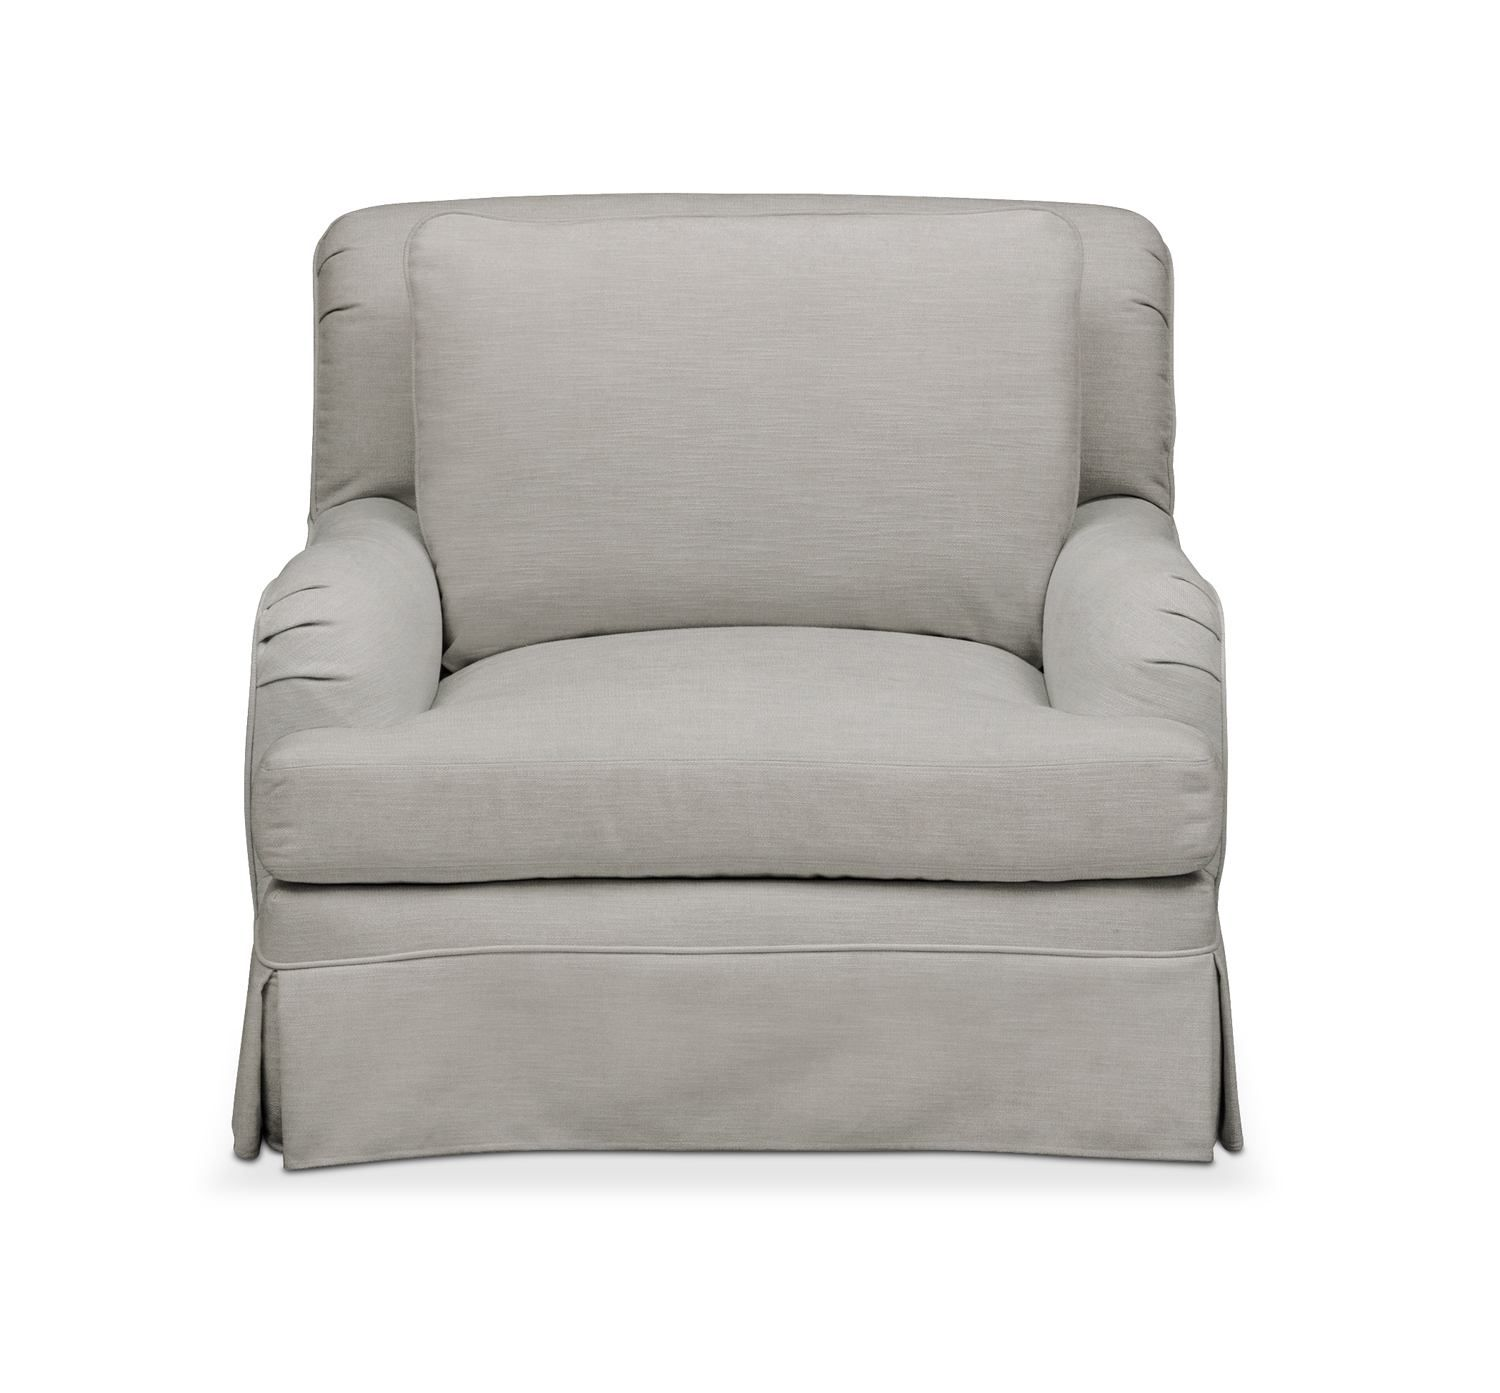 Campbell Chair Cumulus in Dudley Gray Campbell